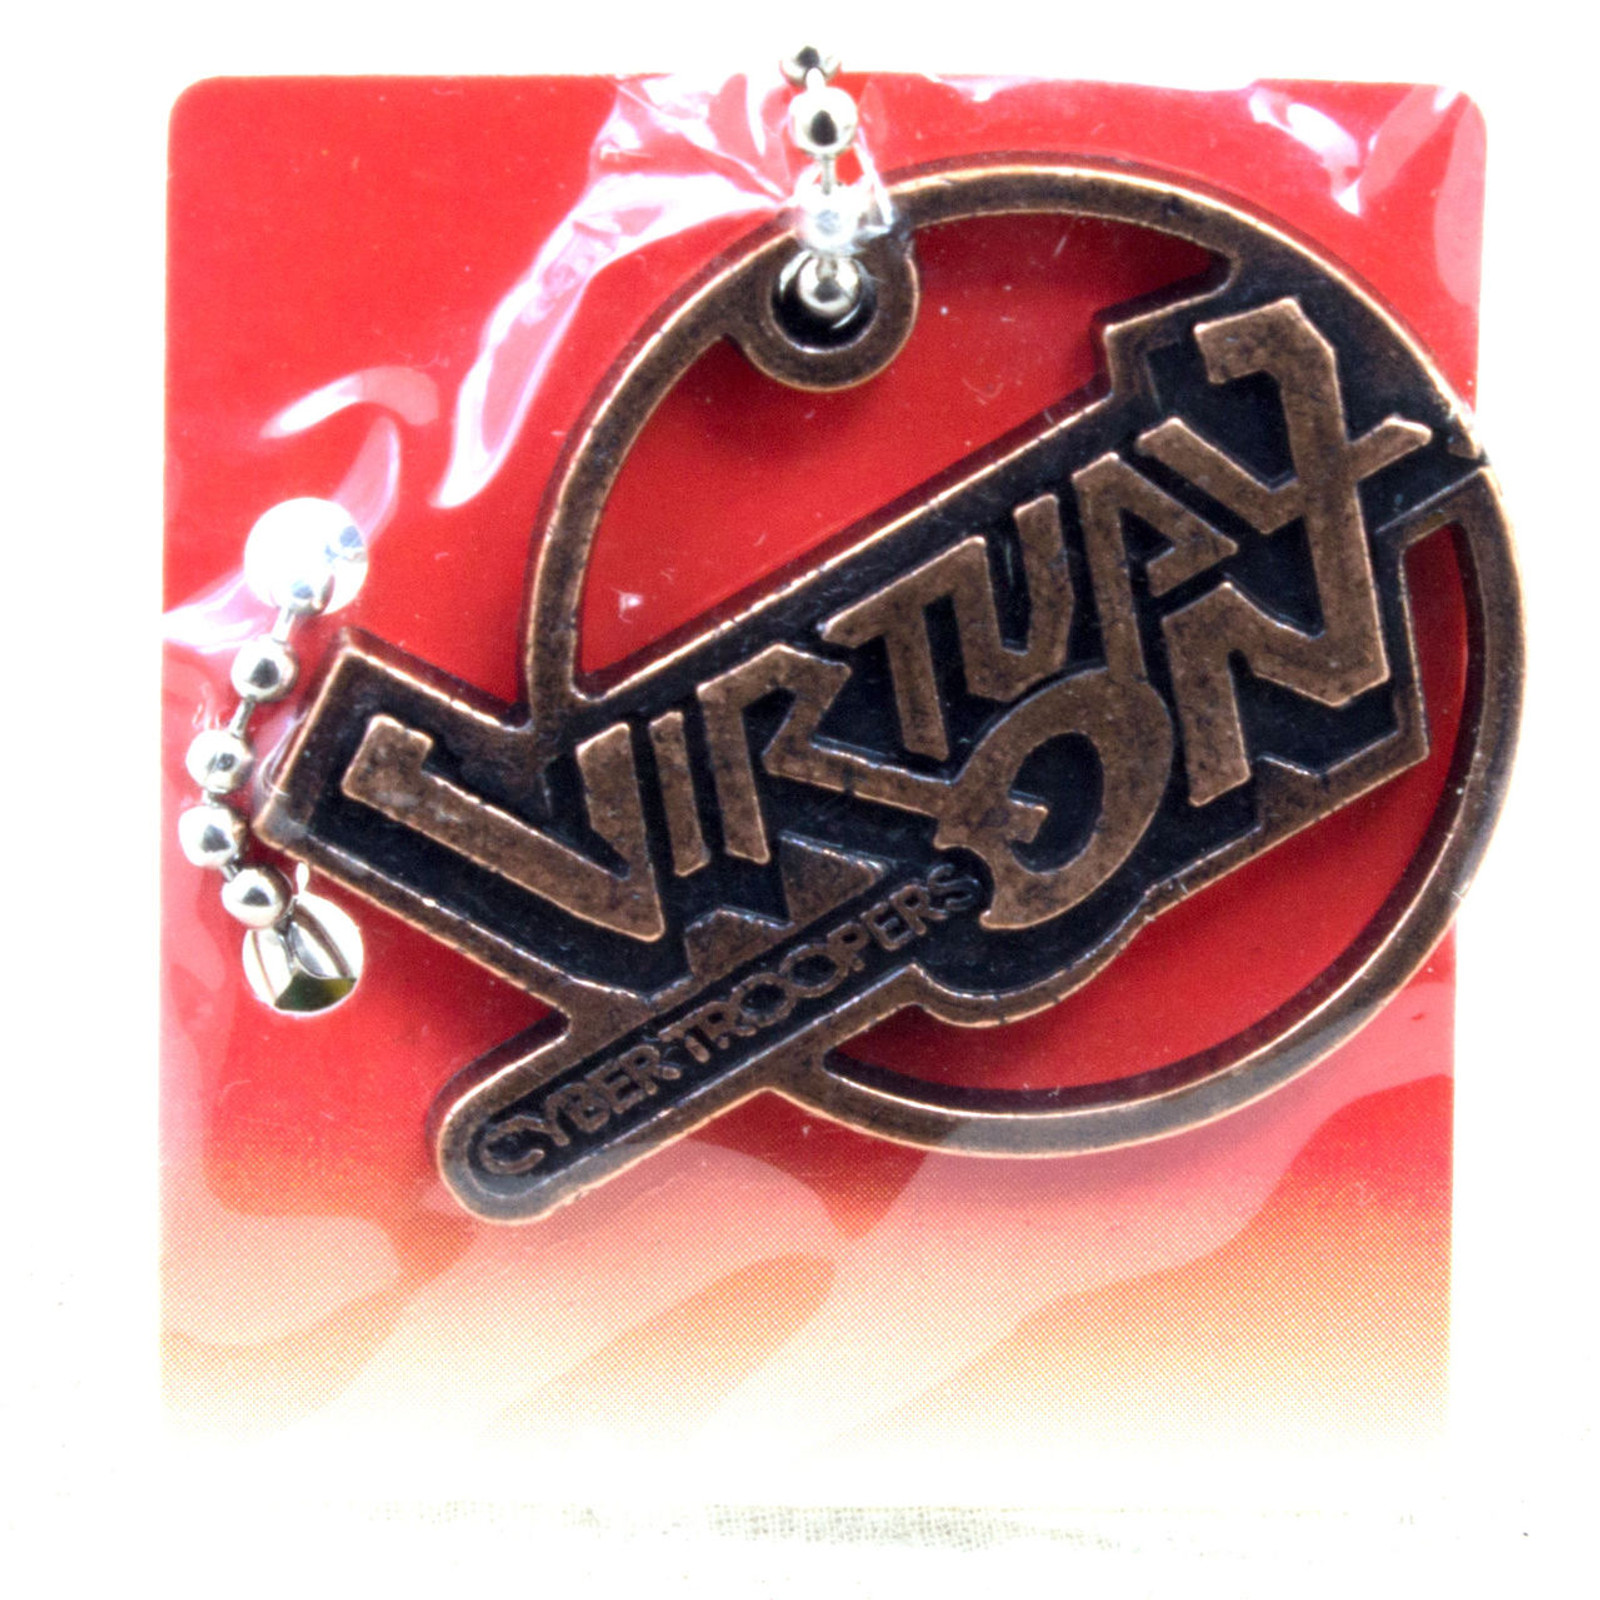 SEGA Logo Metal Plate Ball Chain Cyber Troopers Virtual-on Copper JAPAN GAME